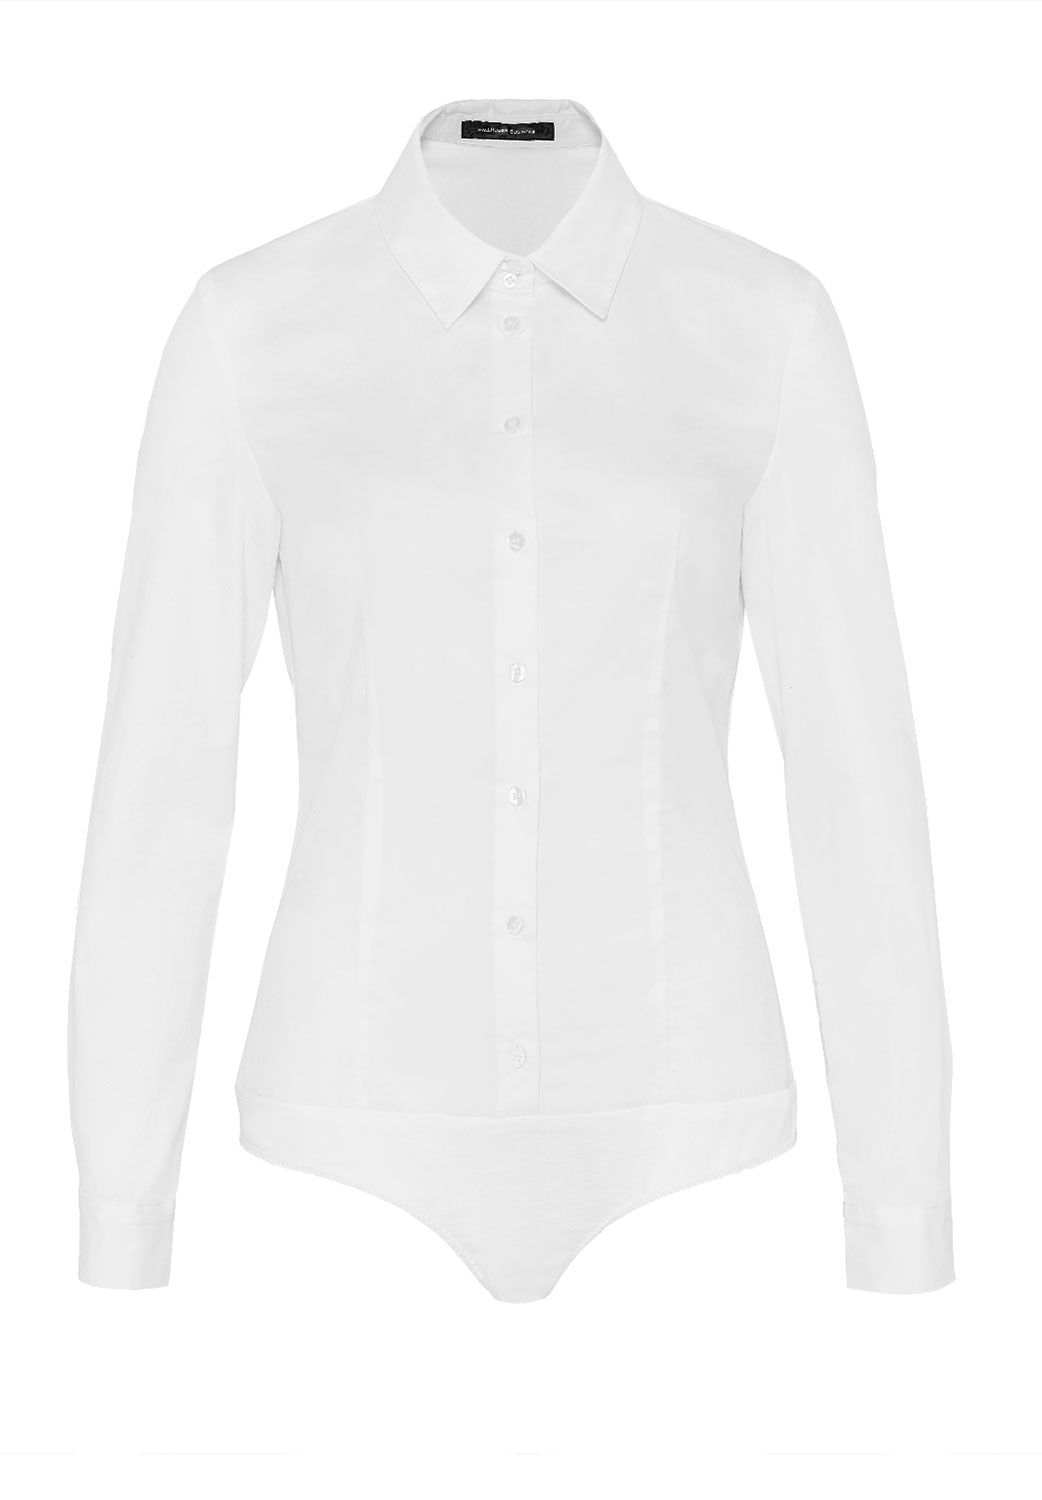 Hallhuber Body blouse CLARISSA, White